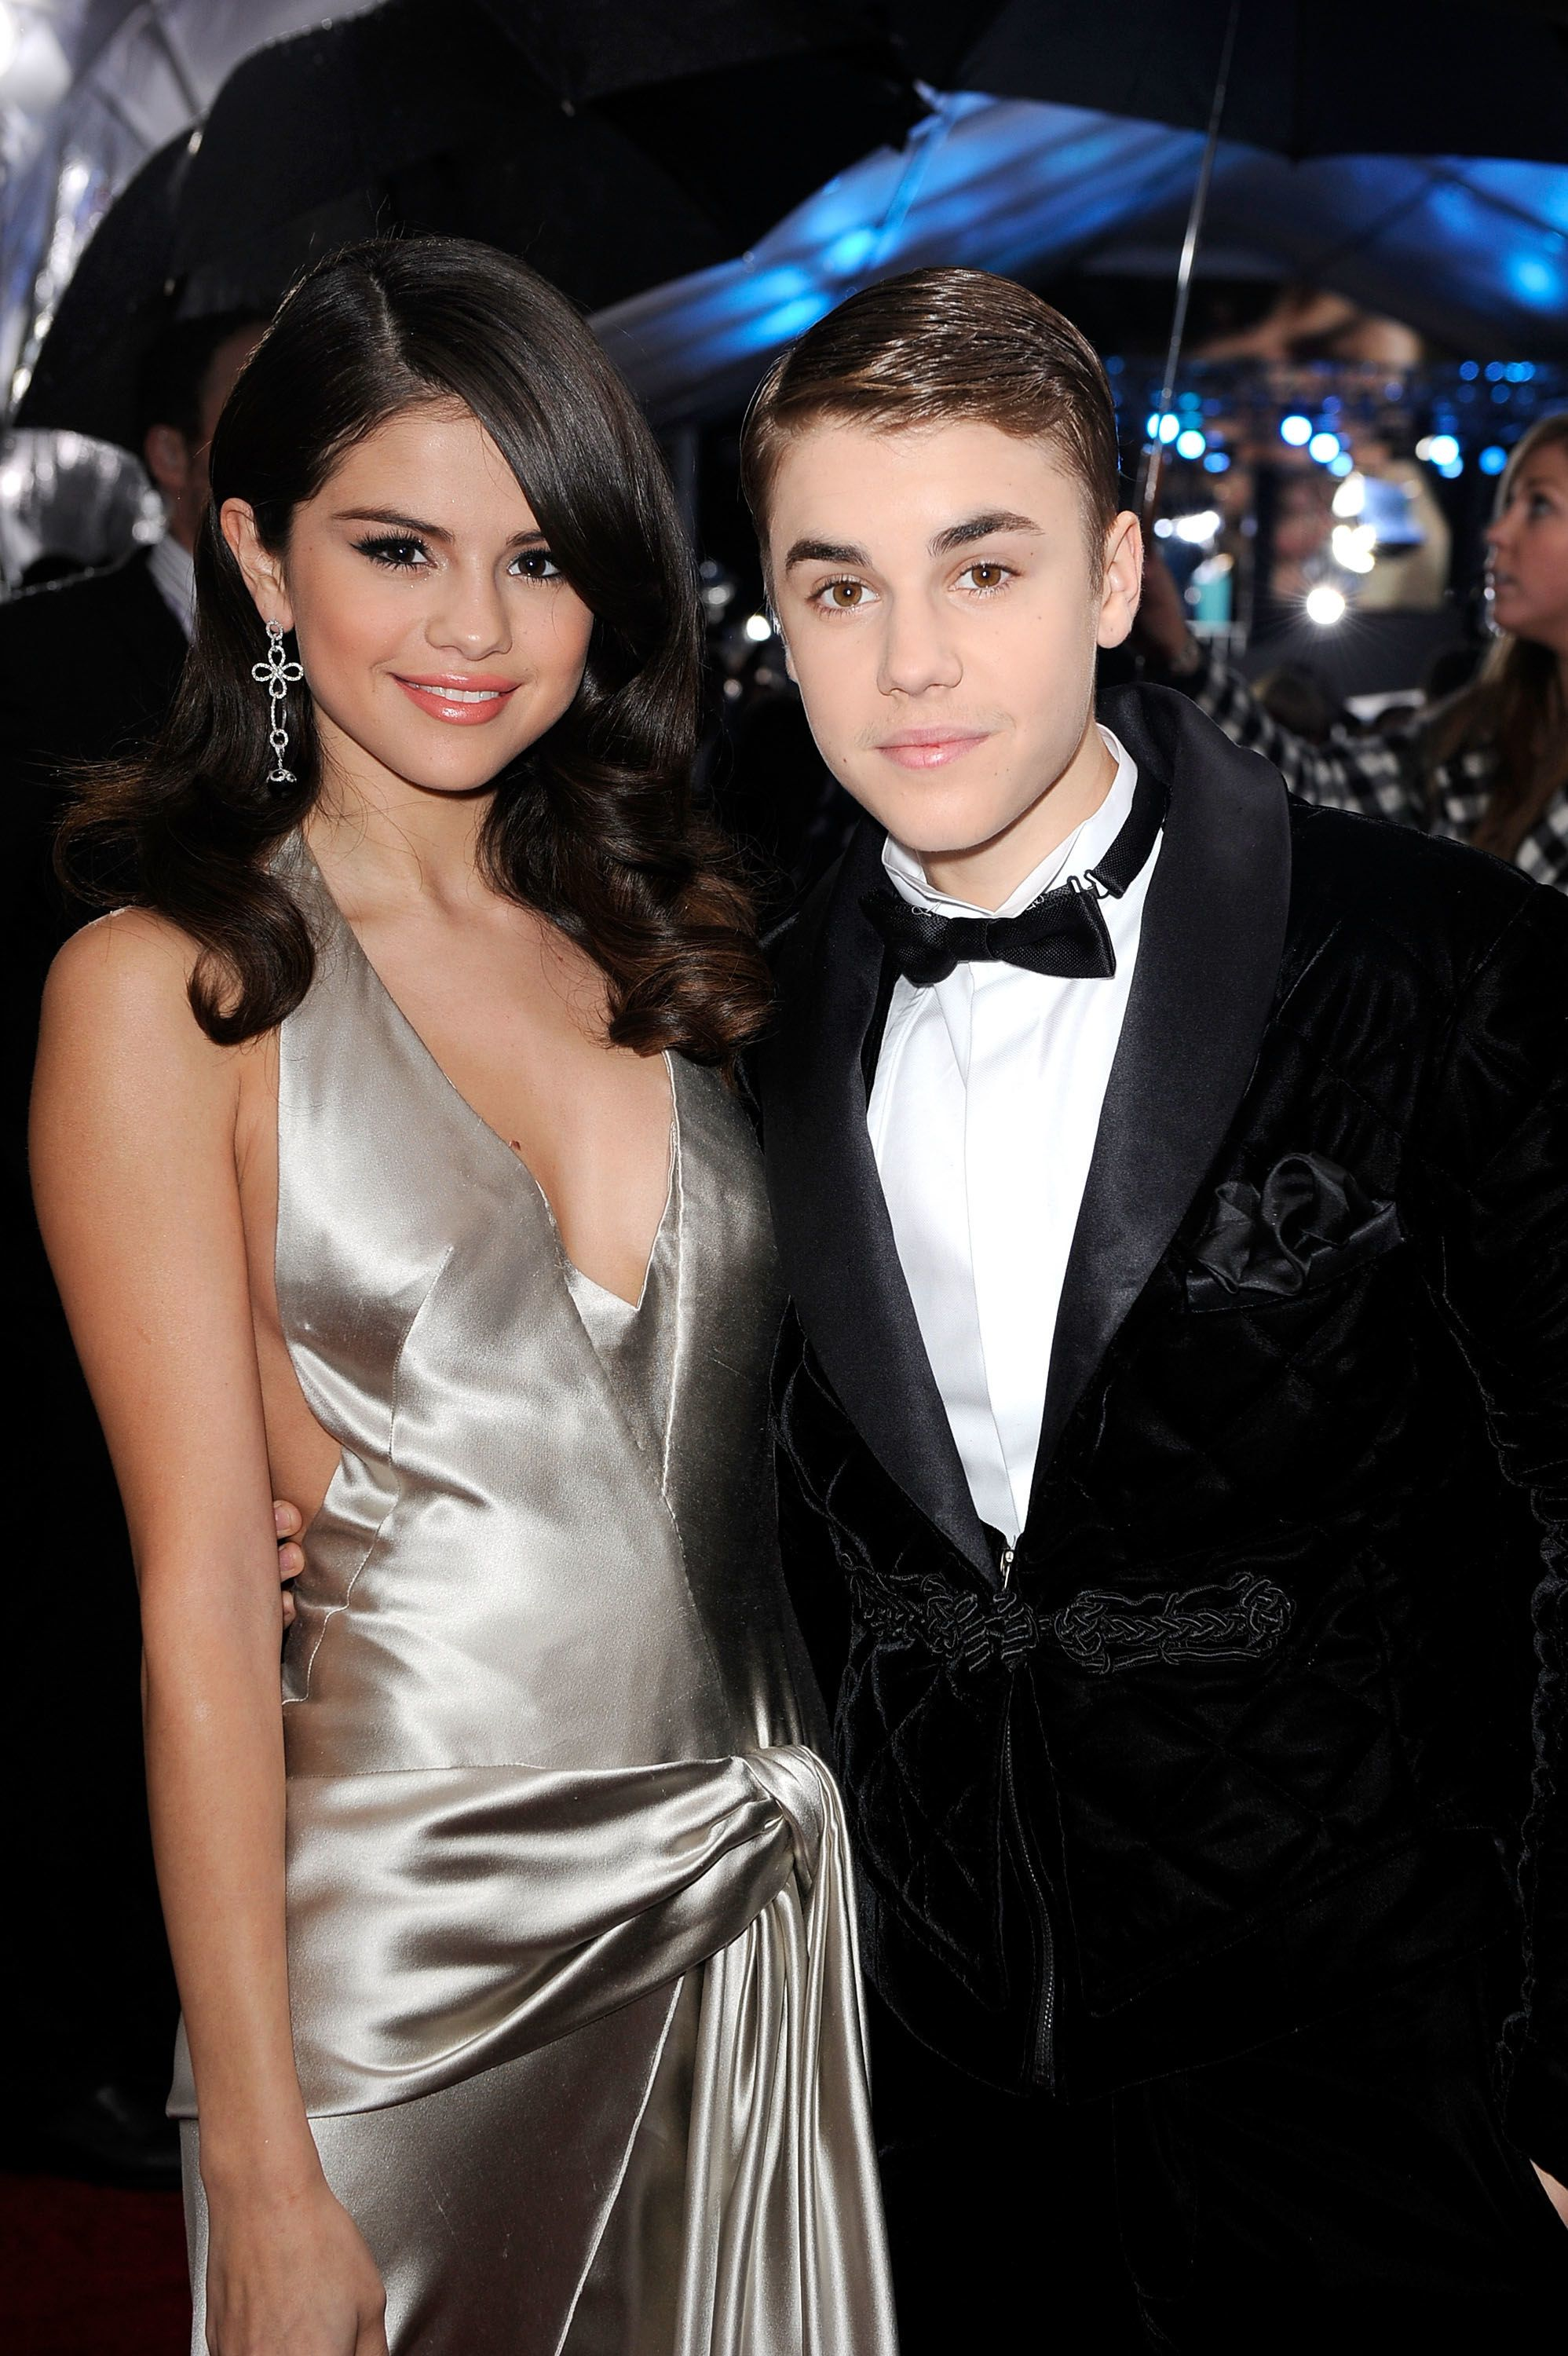 Justin Bieber And Selena Gomez Just Released A Song Together - Biber Bettwà Sche Mà Dchen